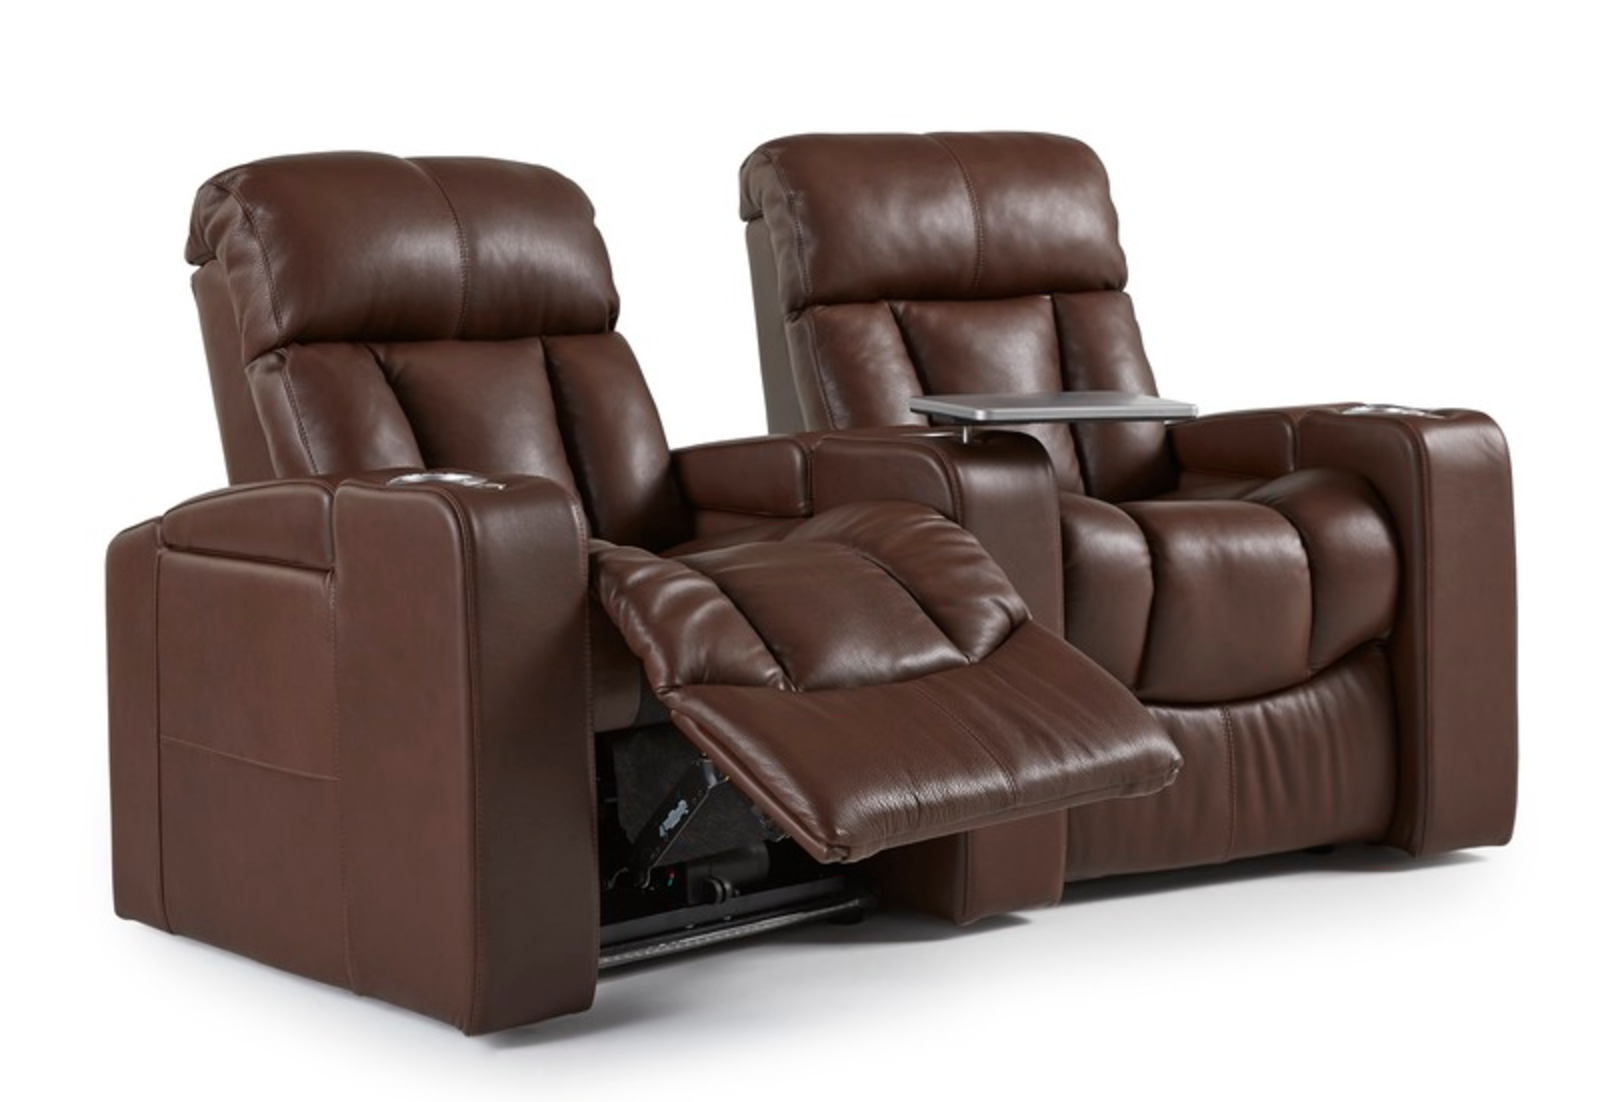 home theater seats palliser paragon home theater seating 13324